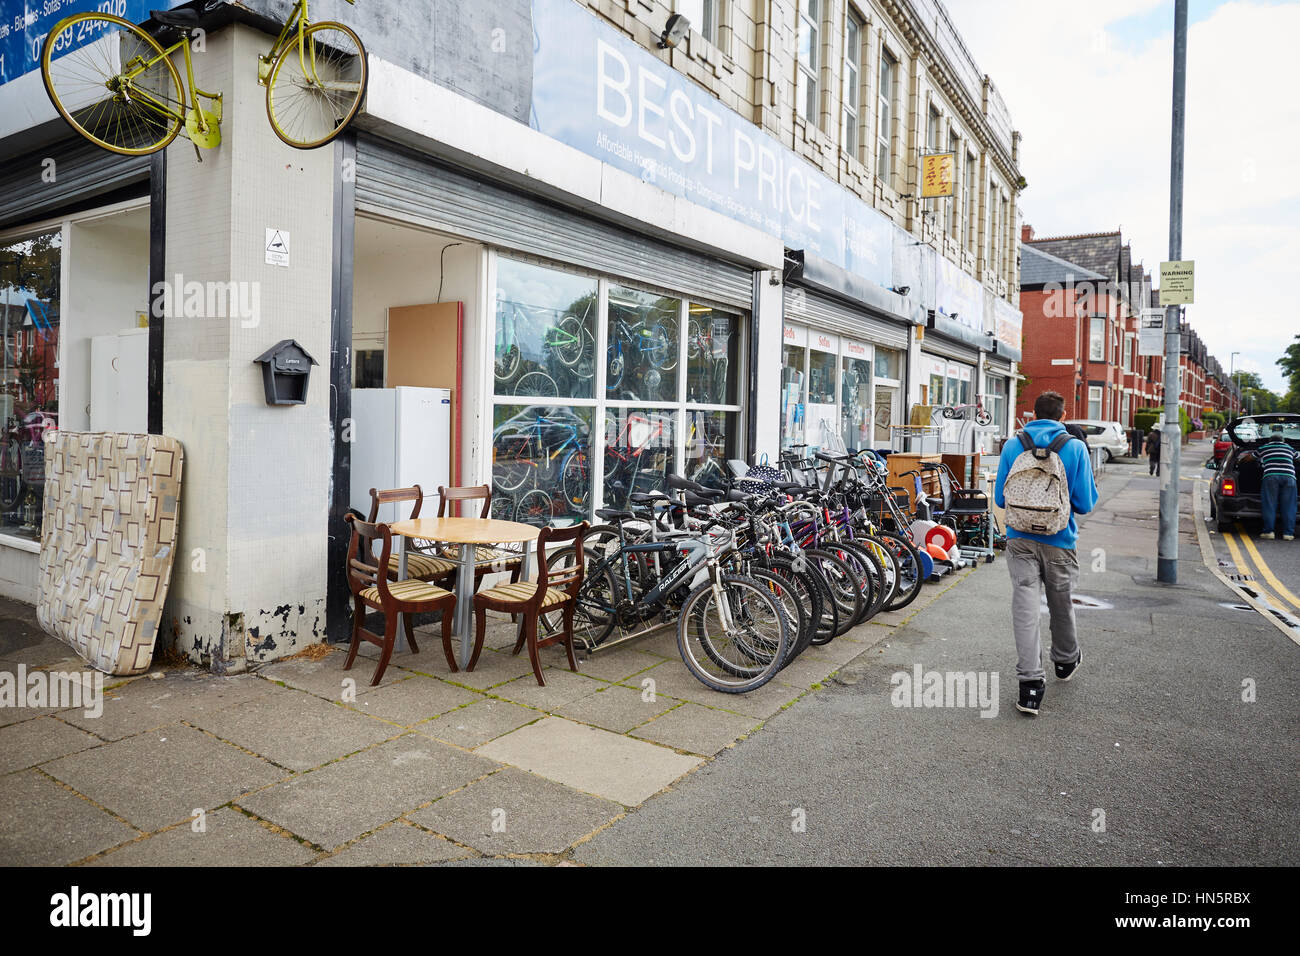 Exterior of Best Price a secondhand junk shop with bicycles and furniture on display on the pavement on Platt Lane, - Stock Image